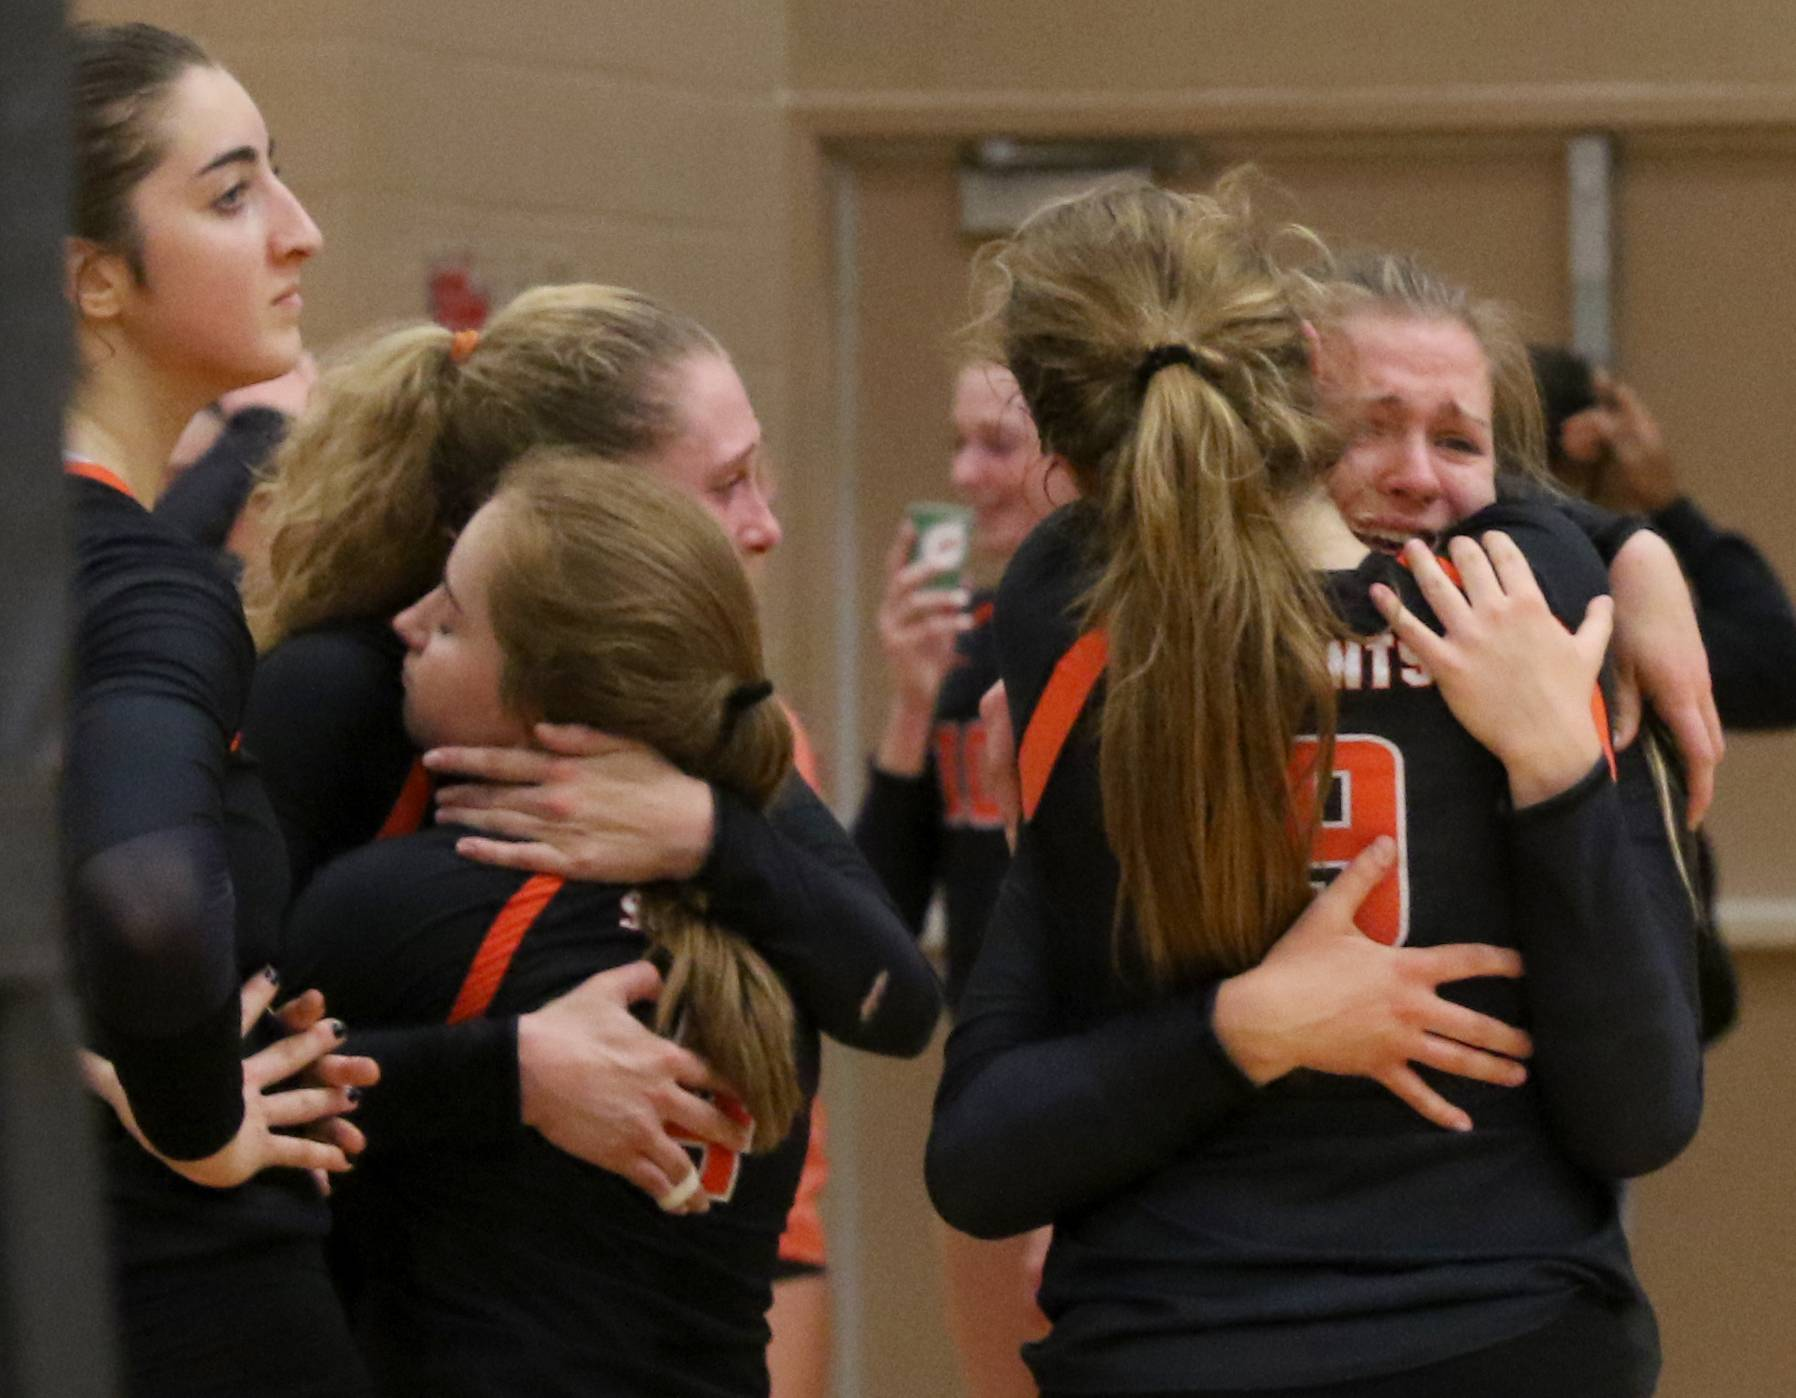 The Saints of St. Charles East react after a season-ending loss to crosstown rival St. Charles North during a Class 4A sectional title match at Chuck Dayton Gymnasium on the campus of DeKalb High School Wednesday night.